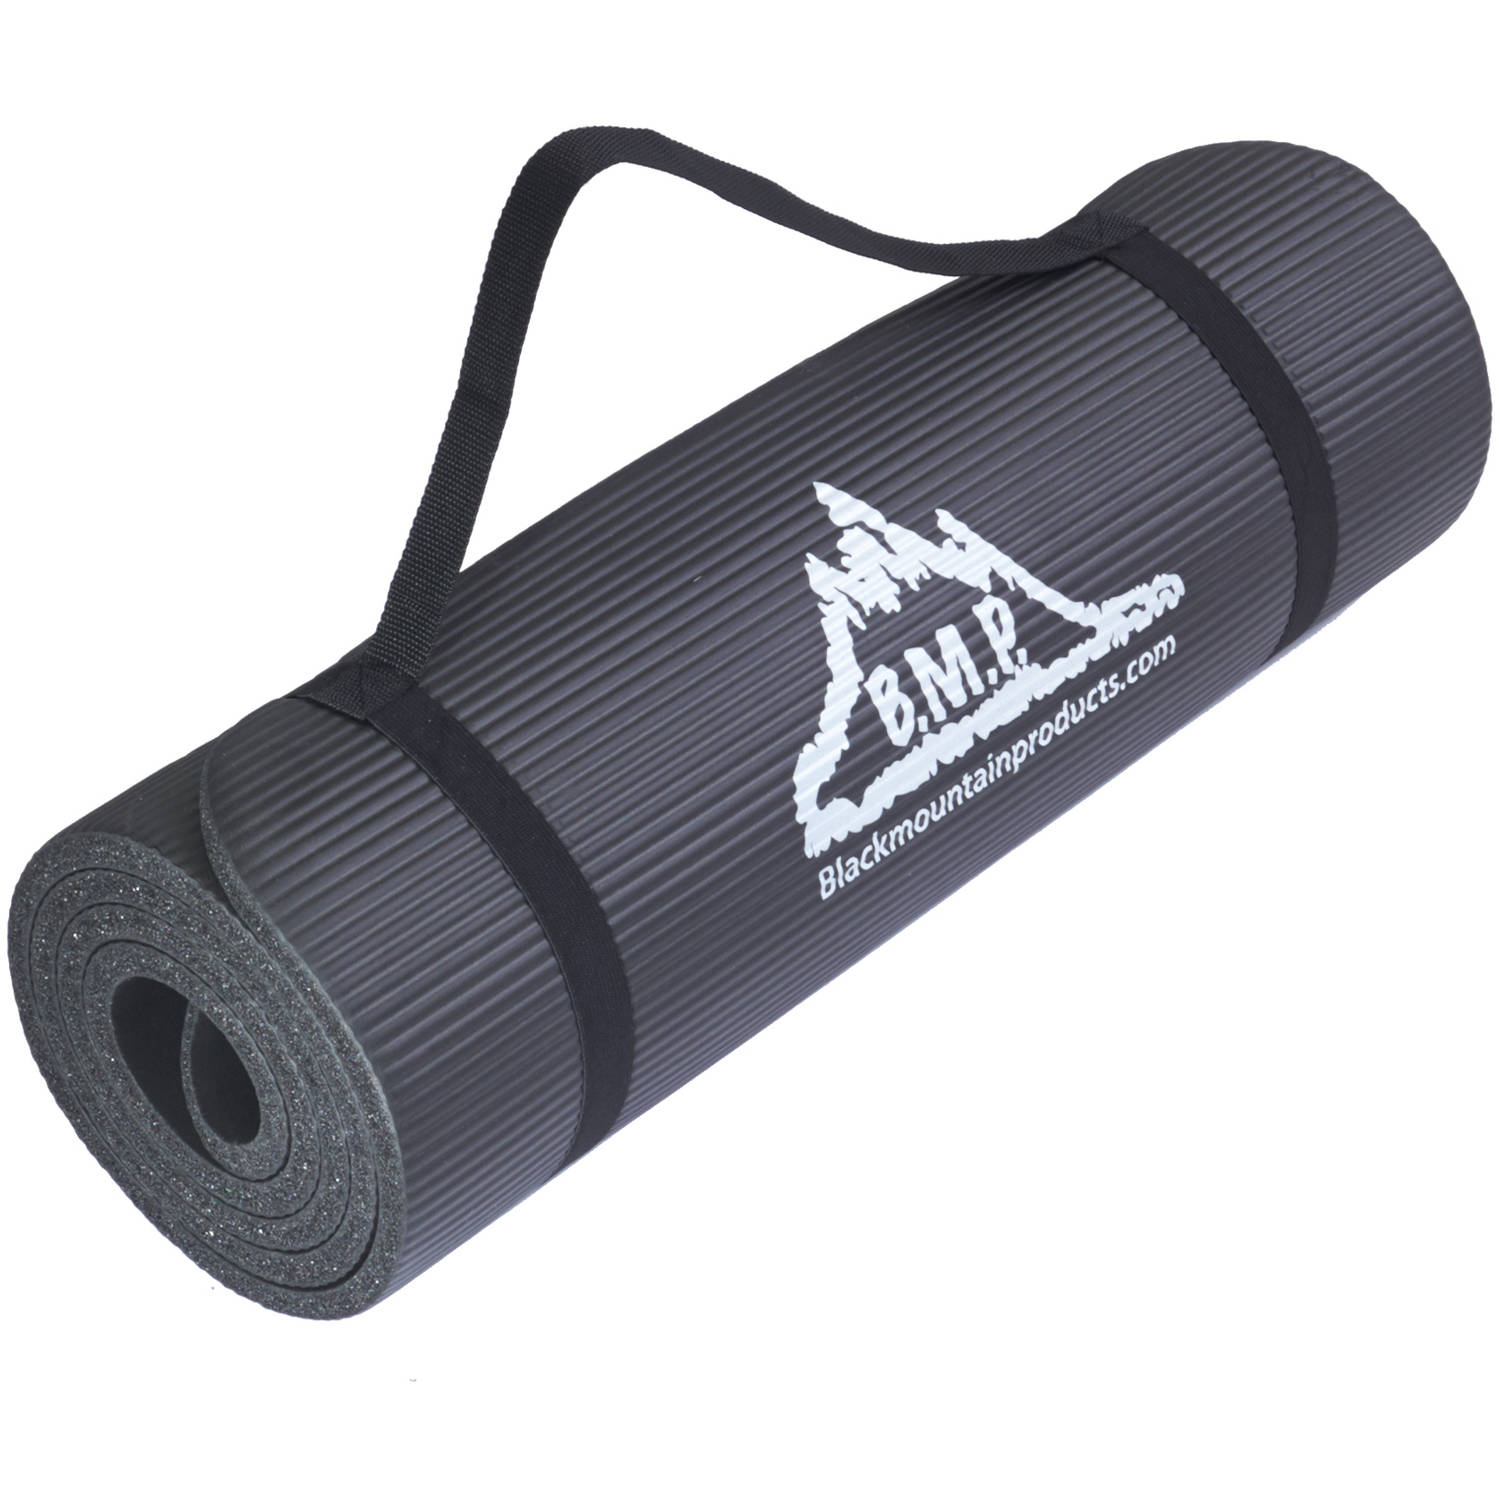 Black Mountain Products Yoga and Exercise Mat